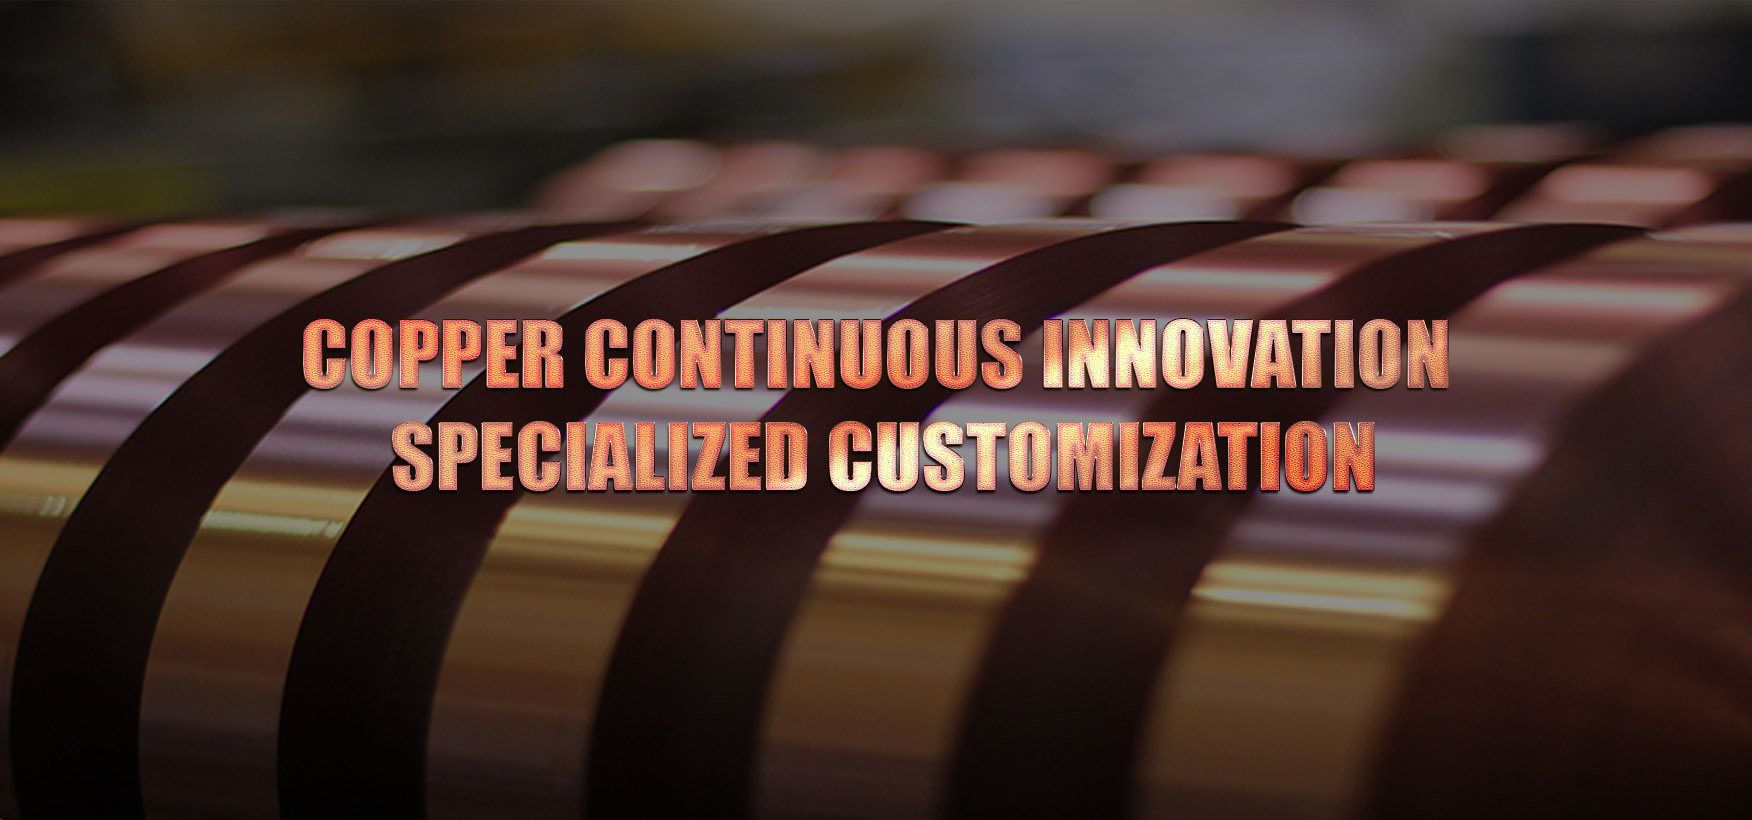 Copper Continuous Innovation Specialized Customization